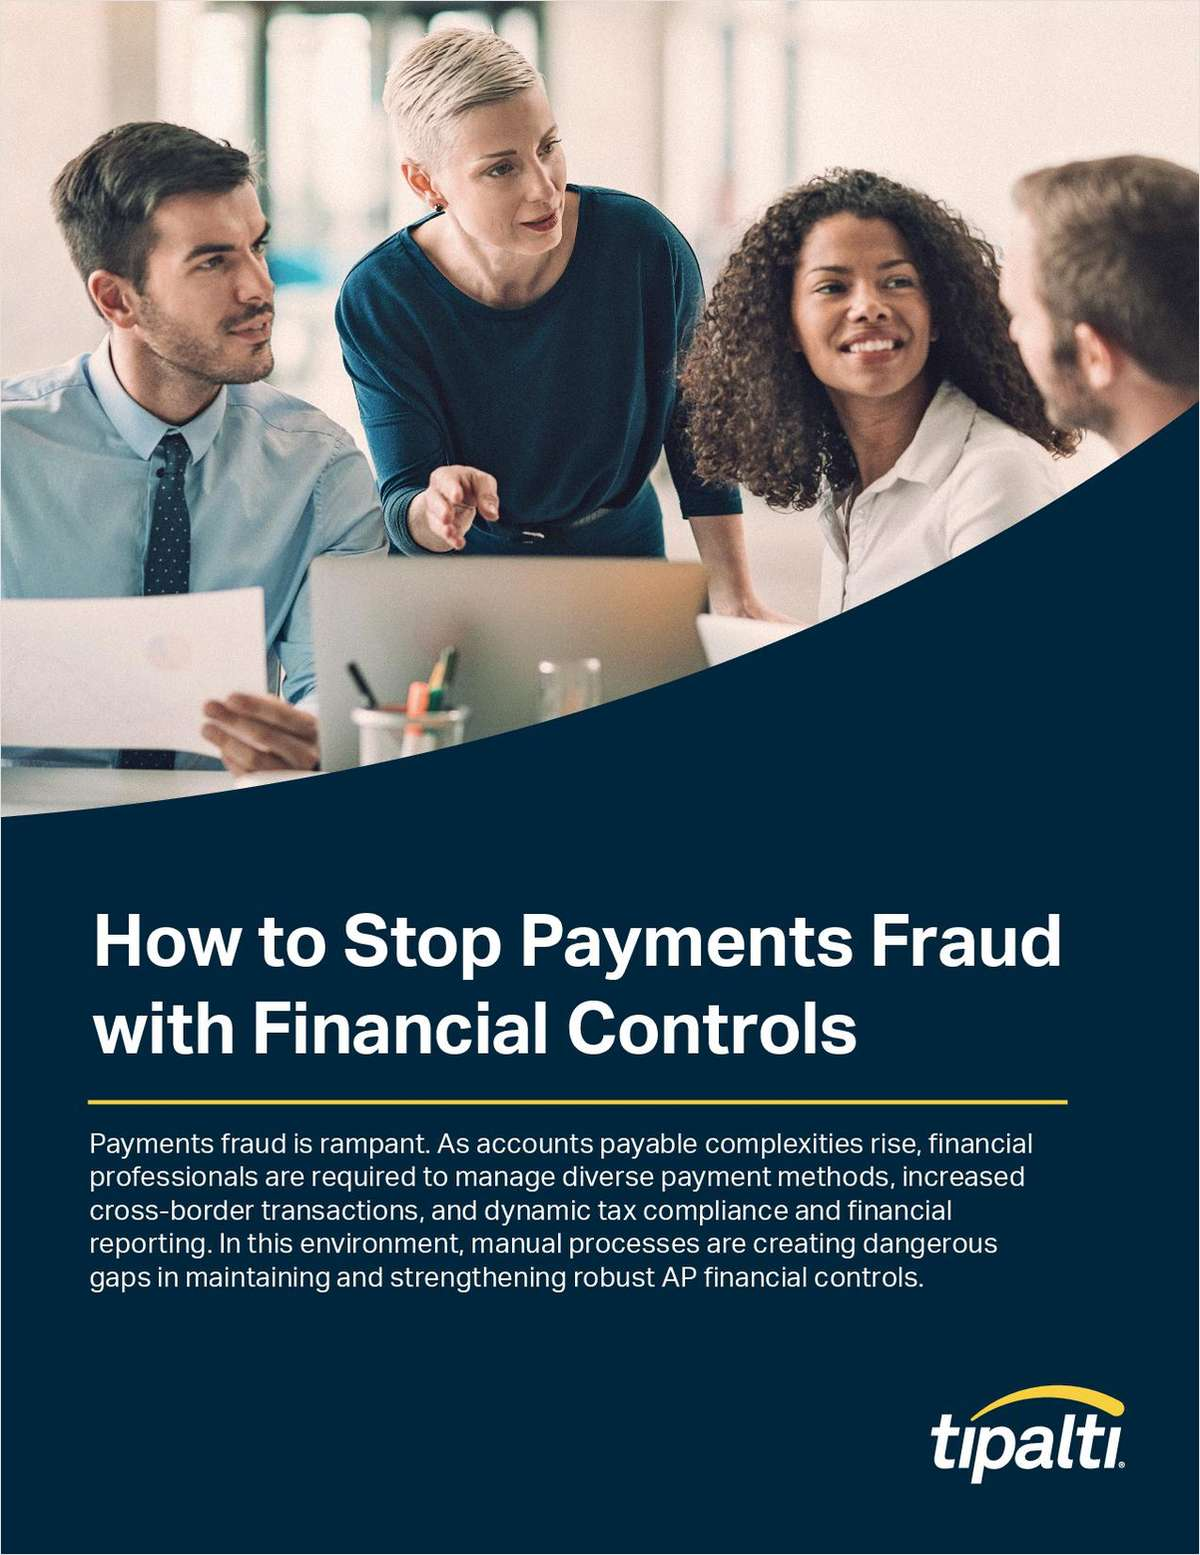 How to Stop Payments Fraud with Financial Controls